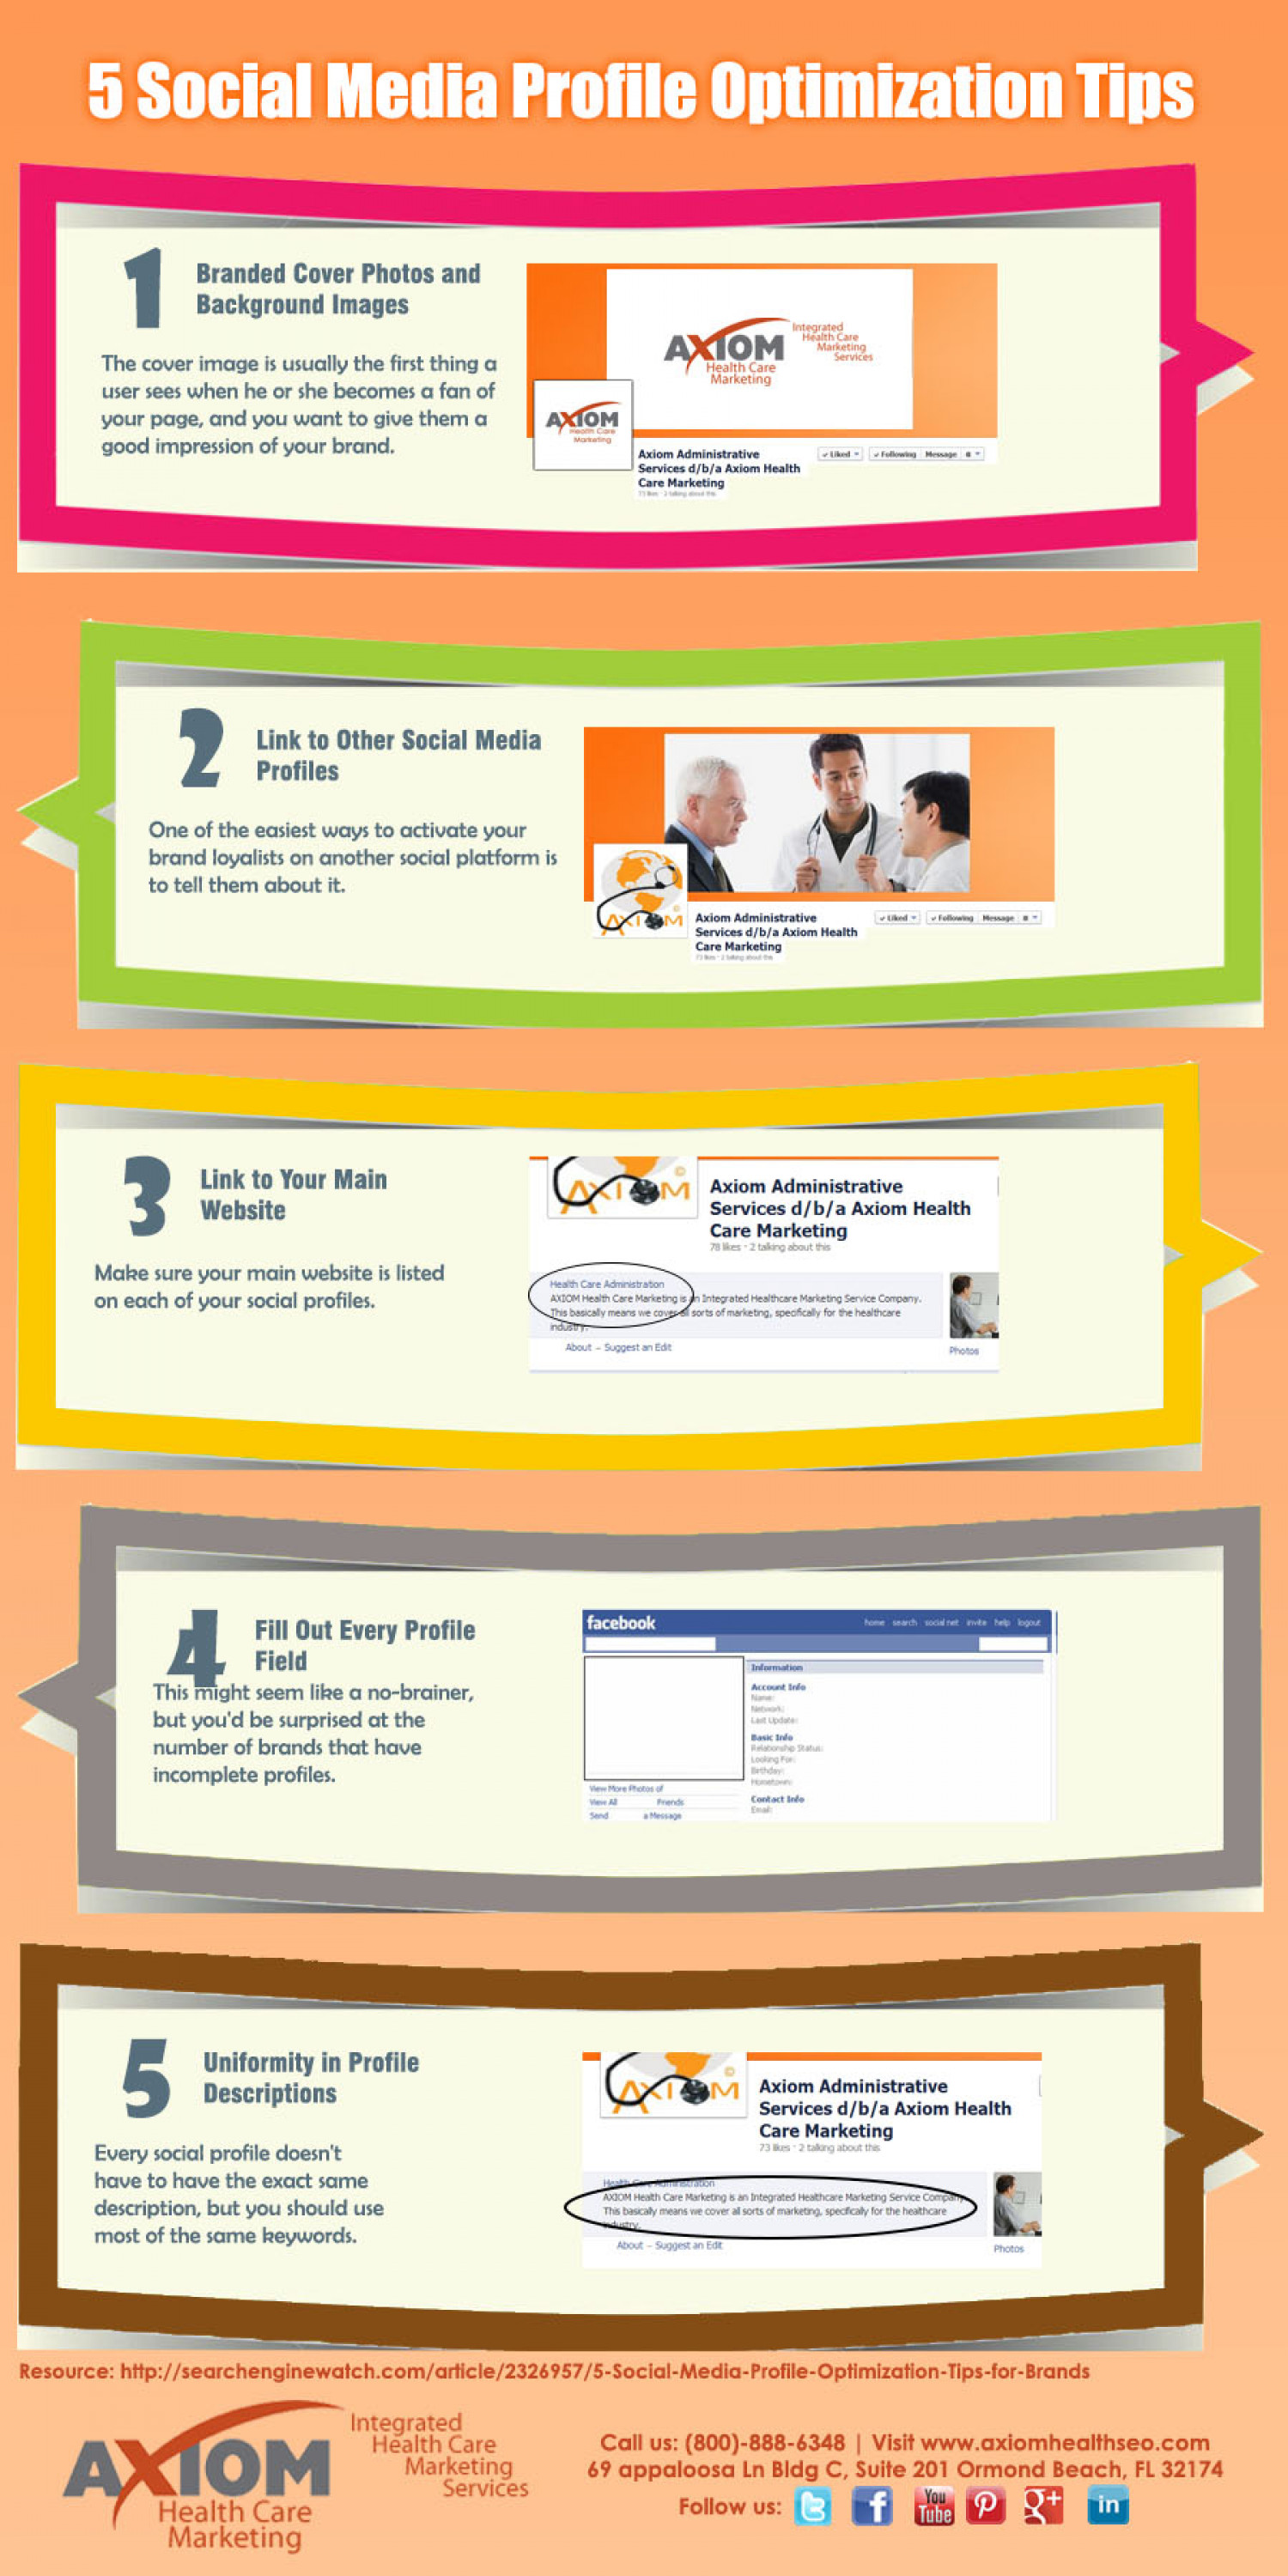 5 Social Media Profile Optimization Tips Infographic